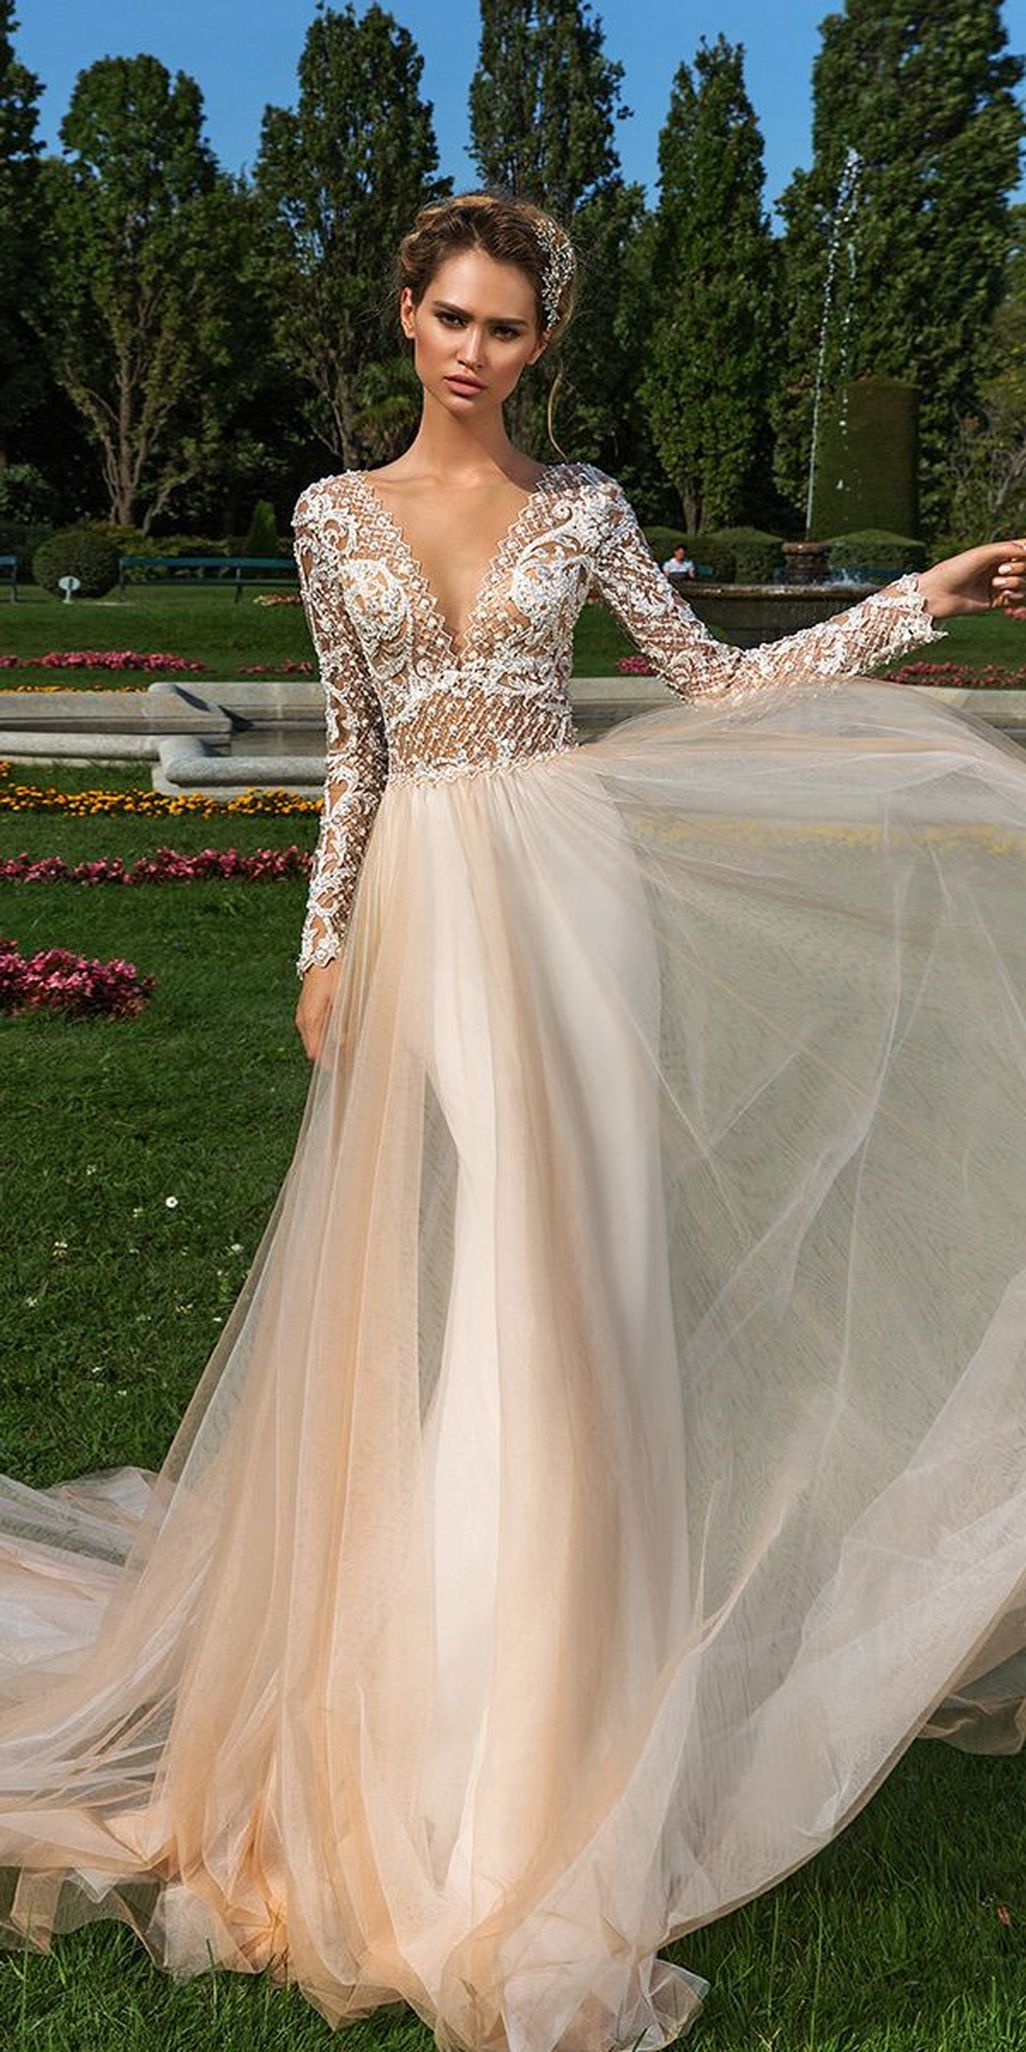 Cool impressive country style wedding dresses ideas with boots